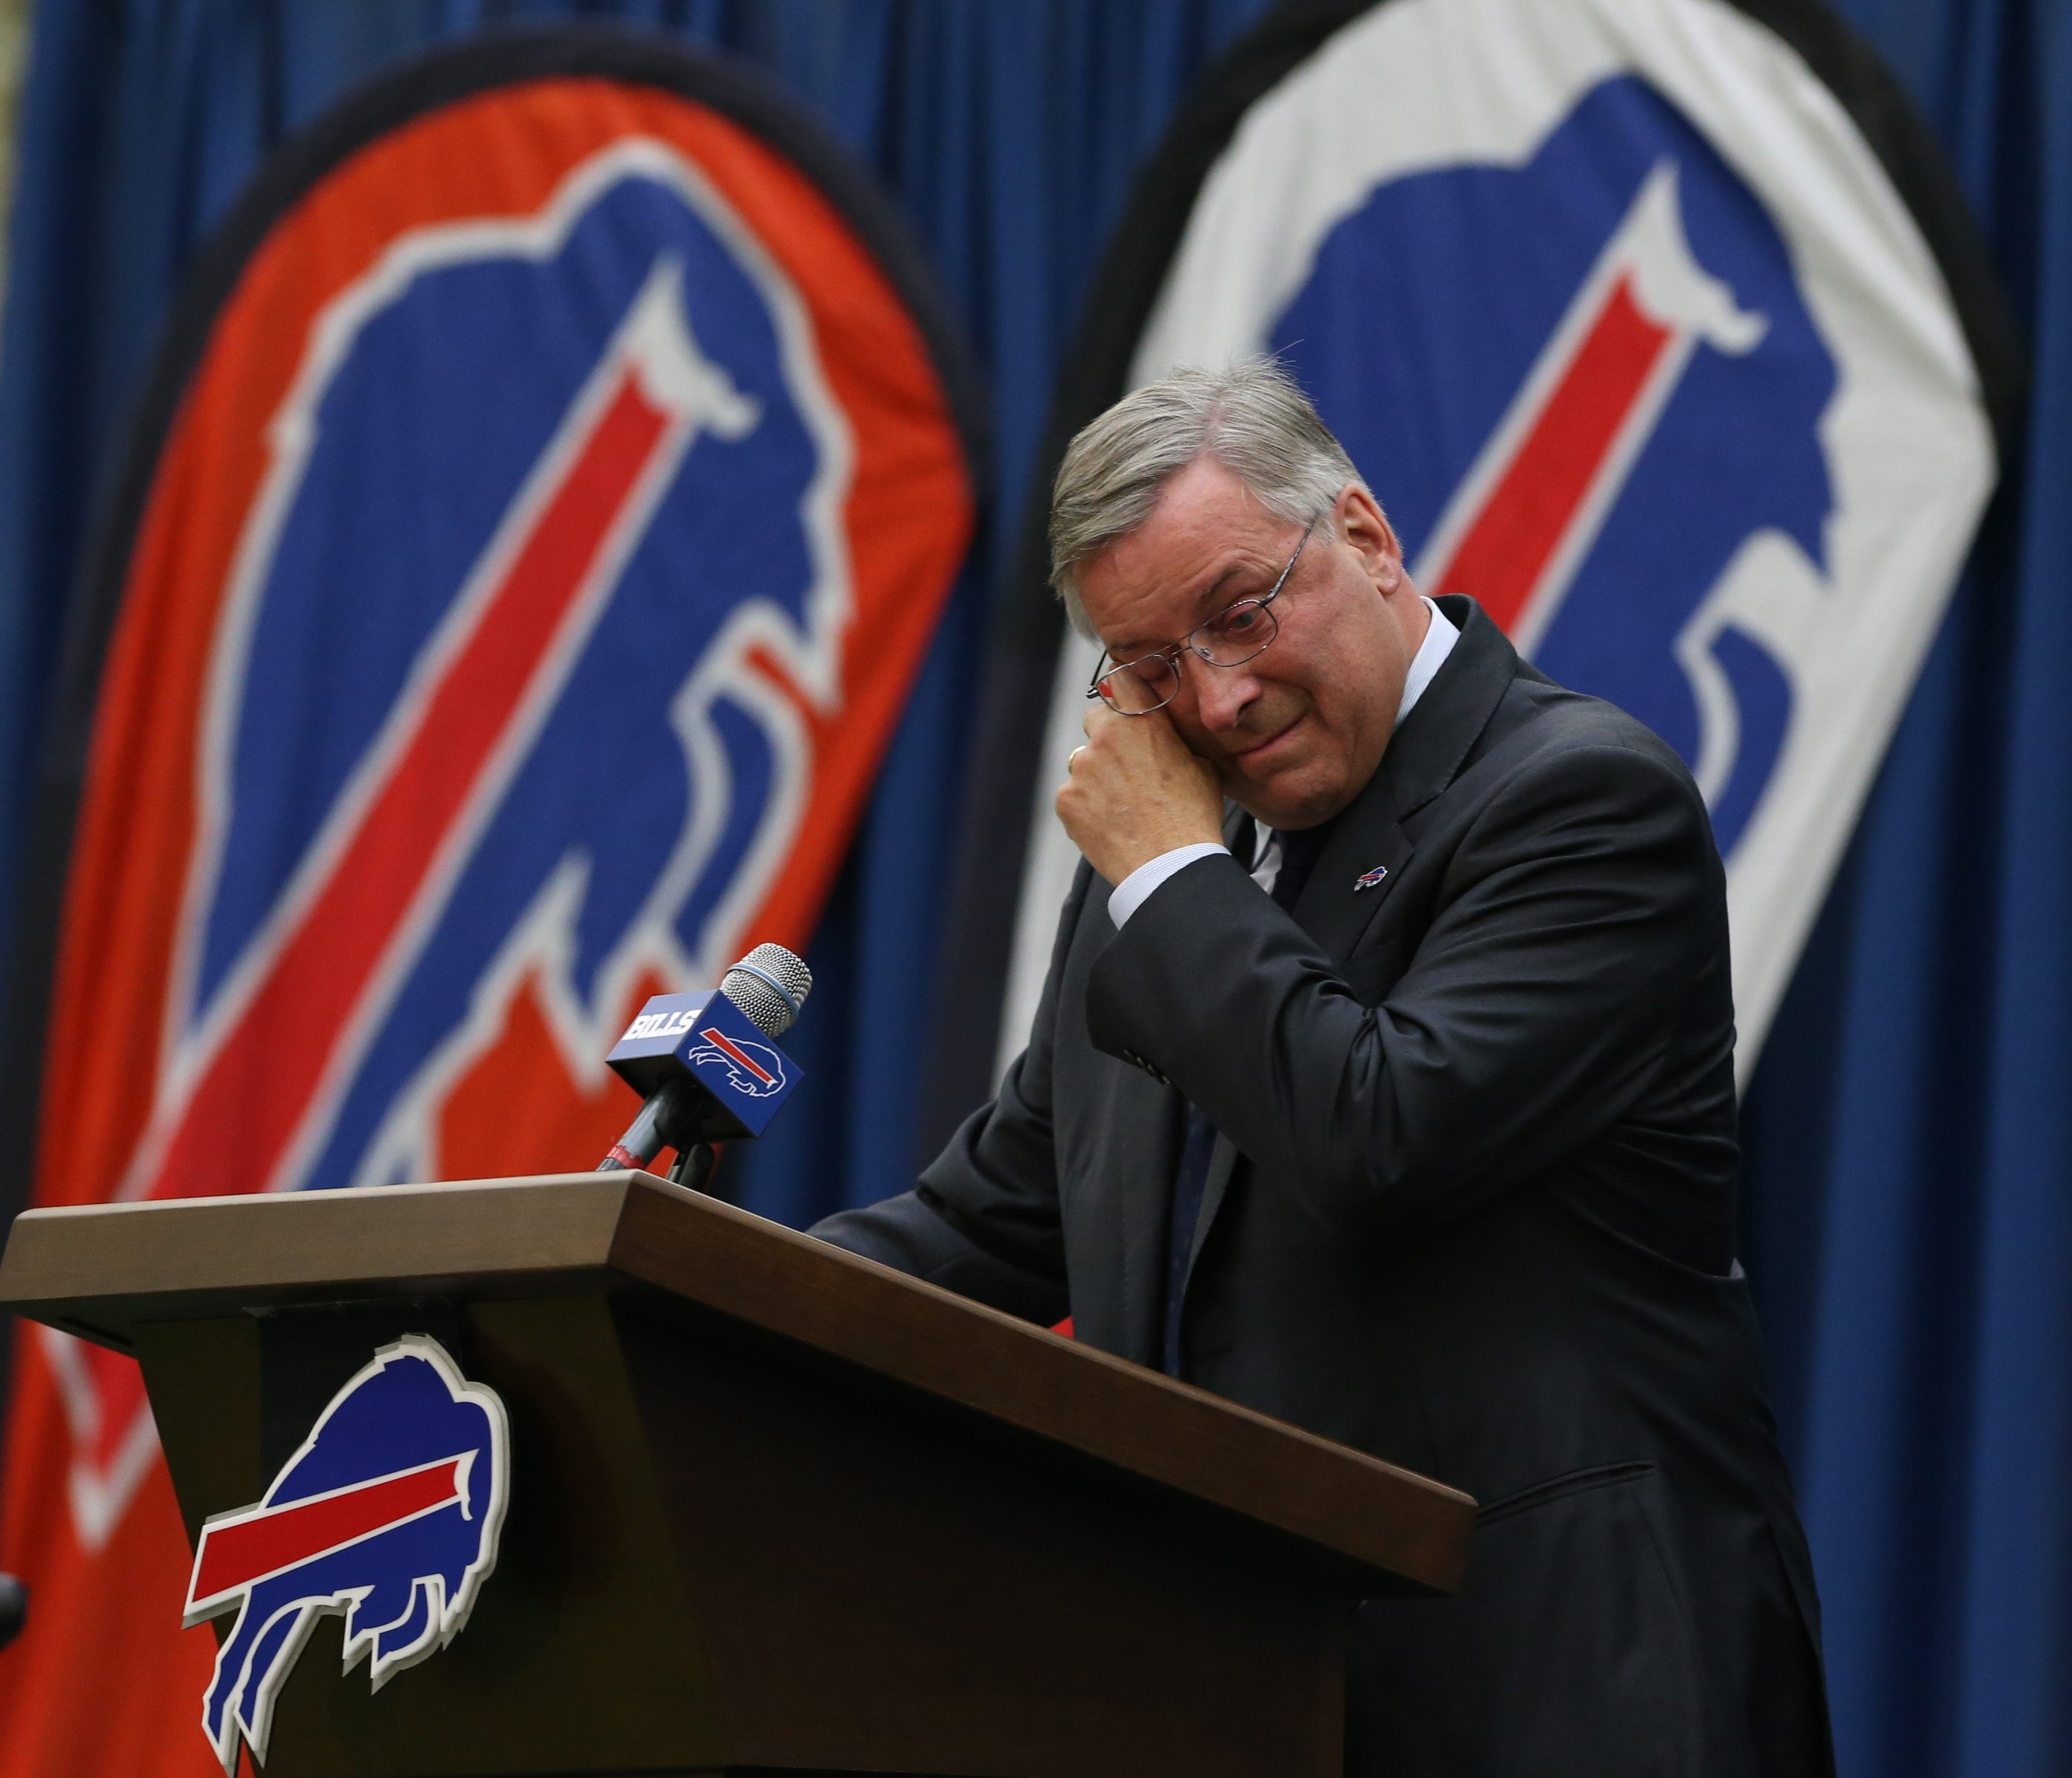 Year of emotions: Terry Pegula cried as he began talking to the press as the newest owner of the Buffalo Bills. A summer highlight had Andre Reed, left, basking in his overdue induction to the Pro Football Hall of Fame. Solomon Renfro, right, and undefeated Canisius High football were nationally ranked in a championship season.